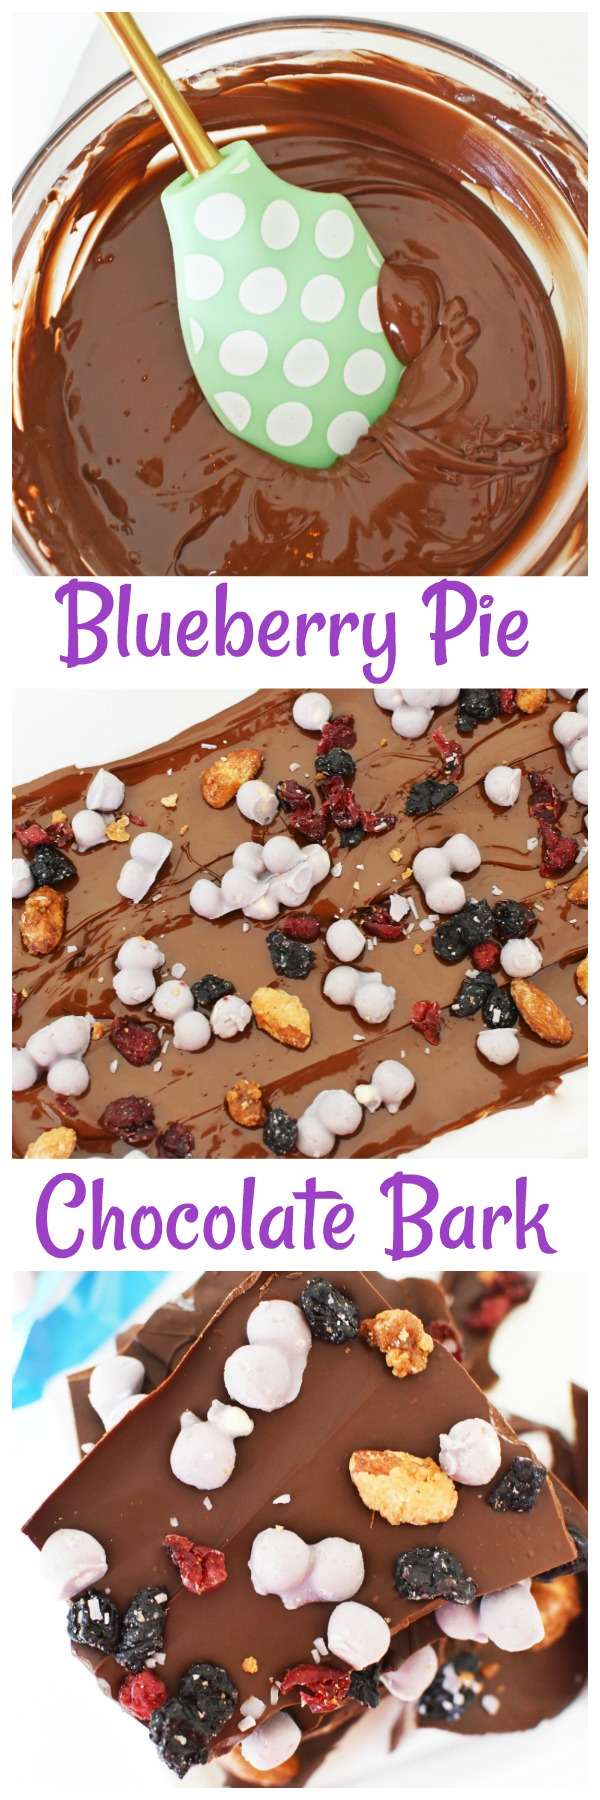 Nutritious Blueberry Pie Chocolate Bark